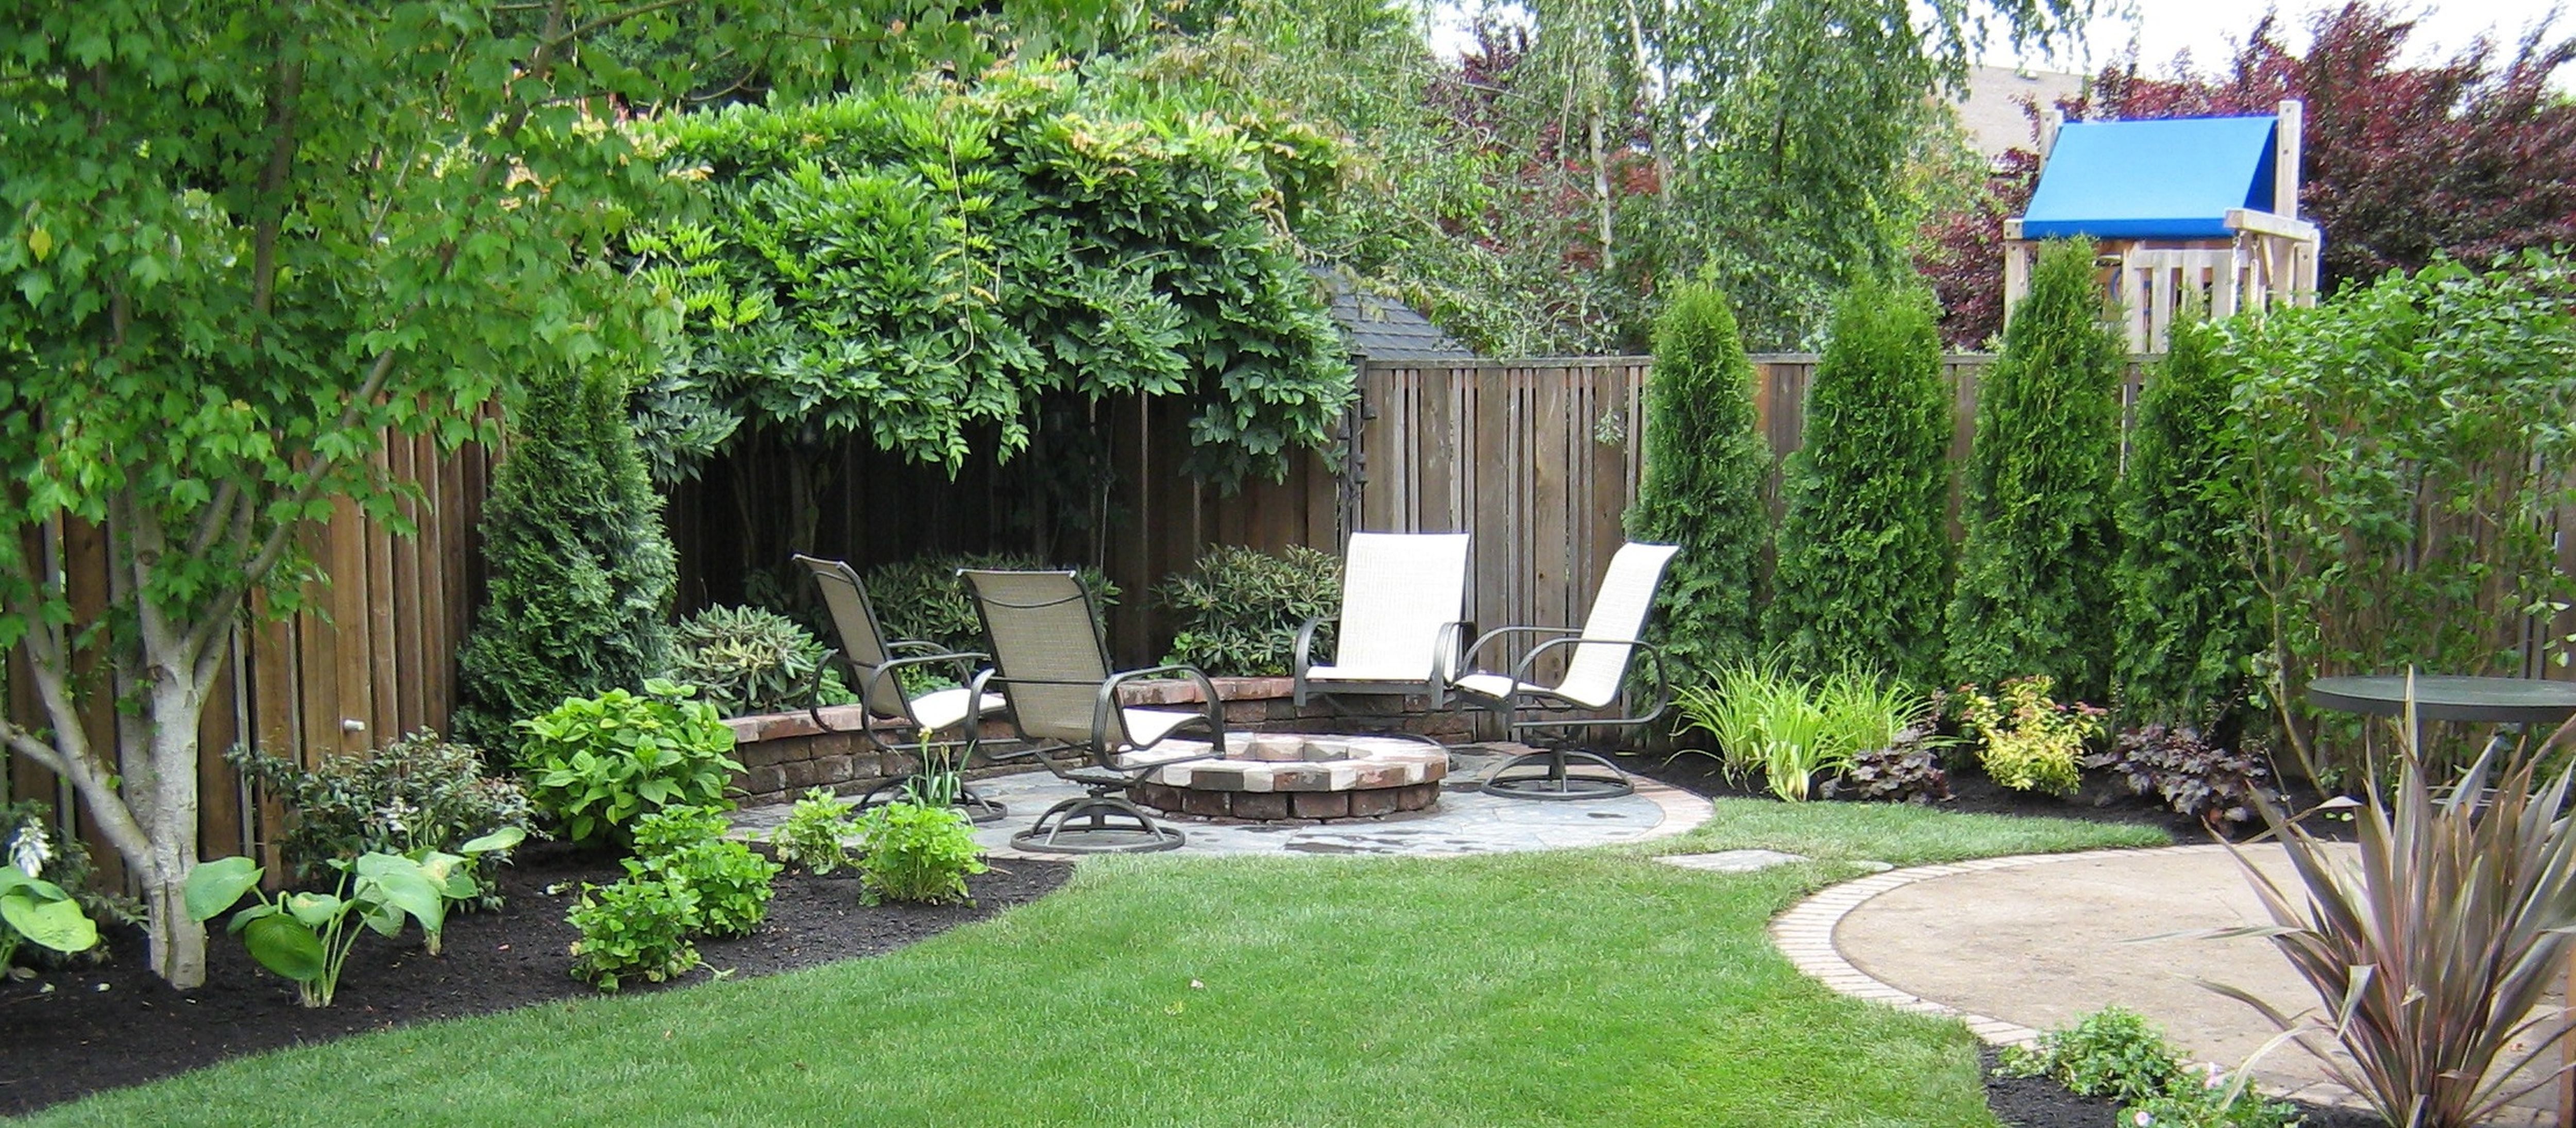 Simple landscaping ideas for a small space simple landscaping ideas landscaping ideas and - Design for backyard landscaping ...